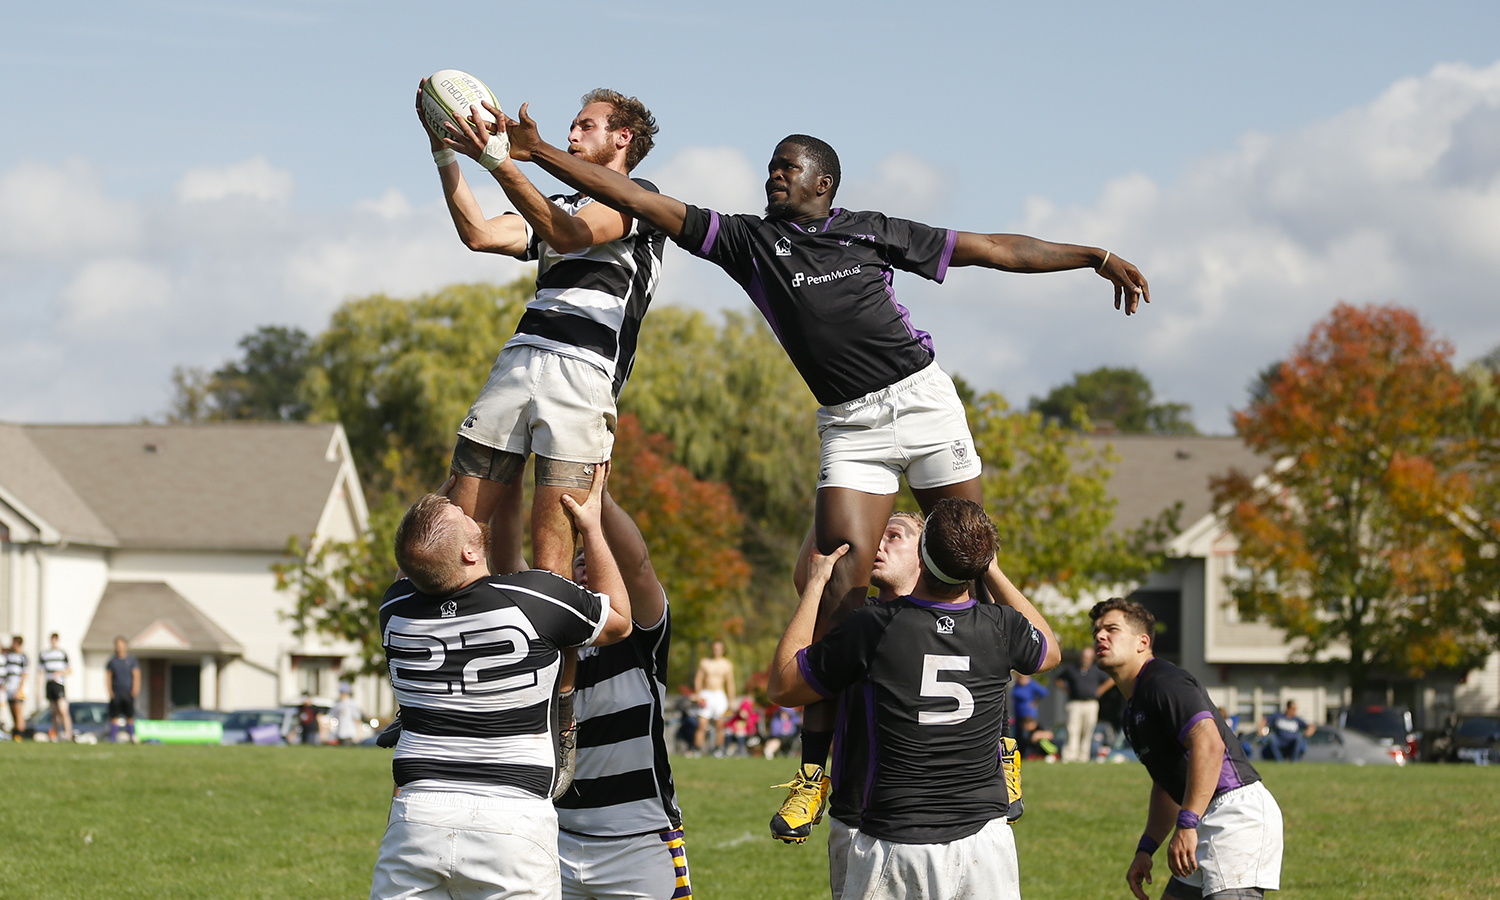 Micah Lynch '19 catches a pass during Hobart Club Rugby's game against Niagara University.